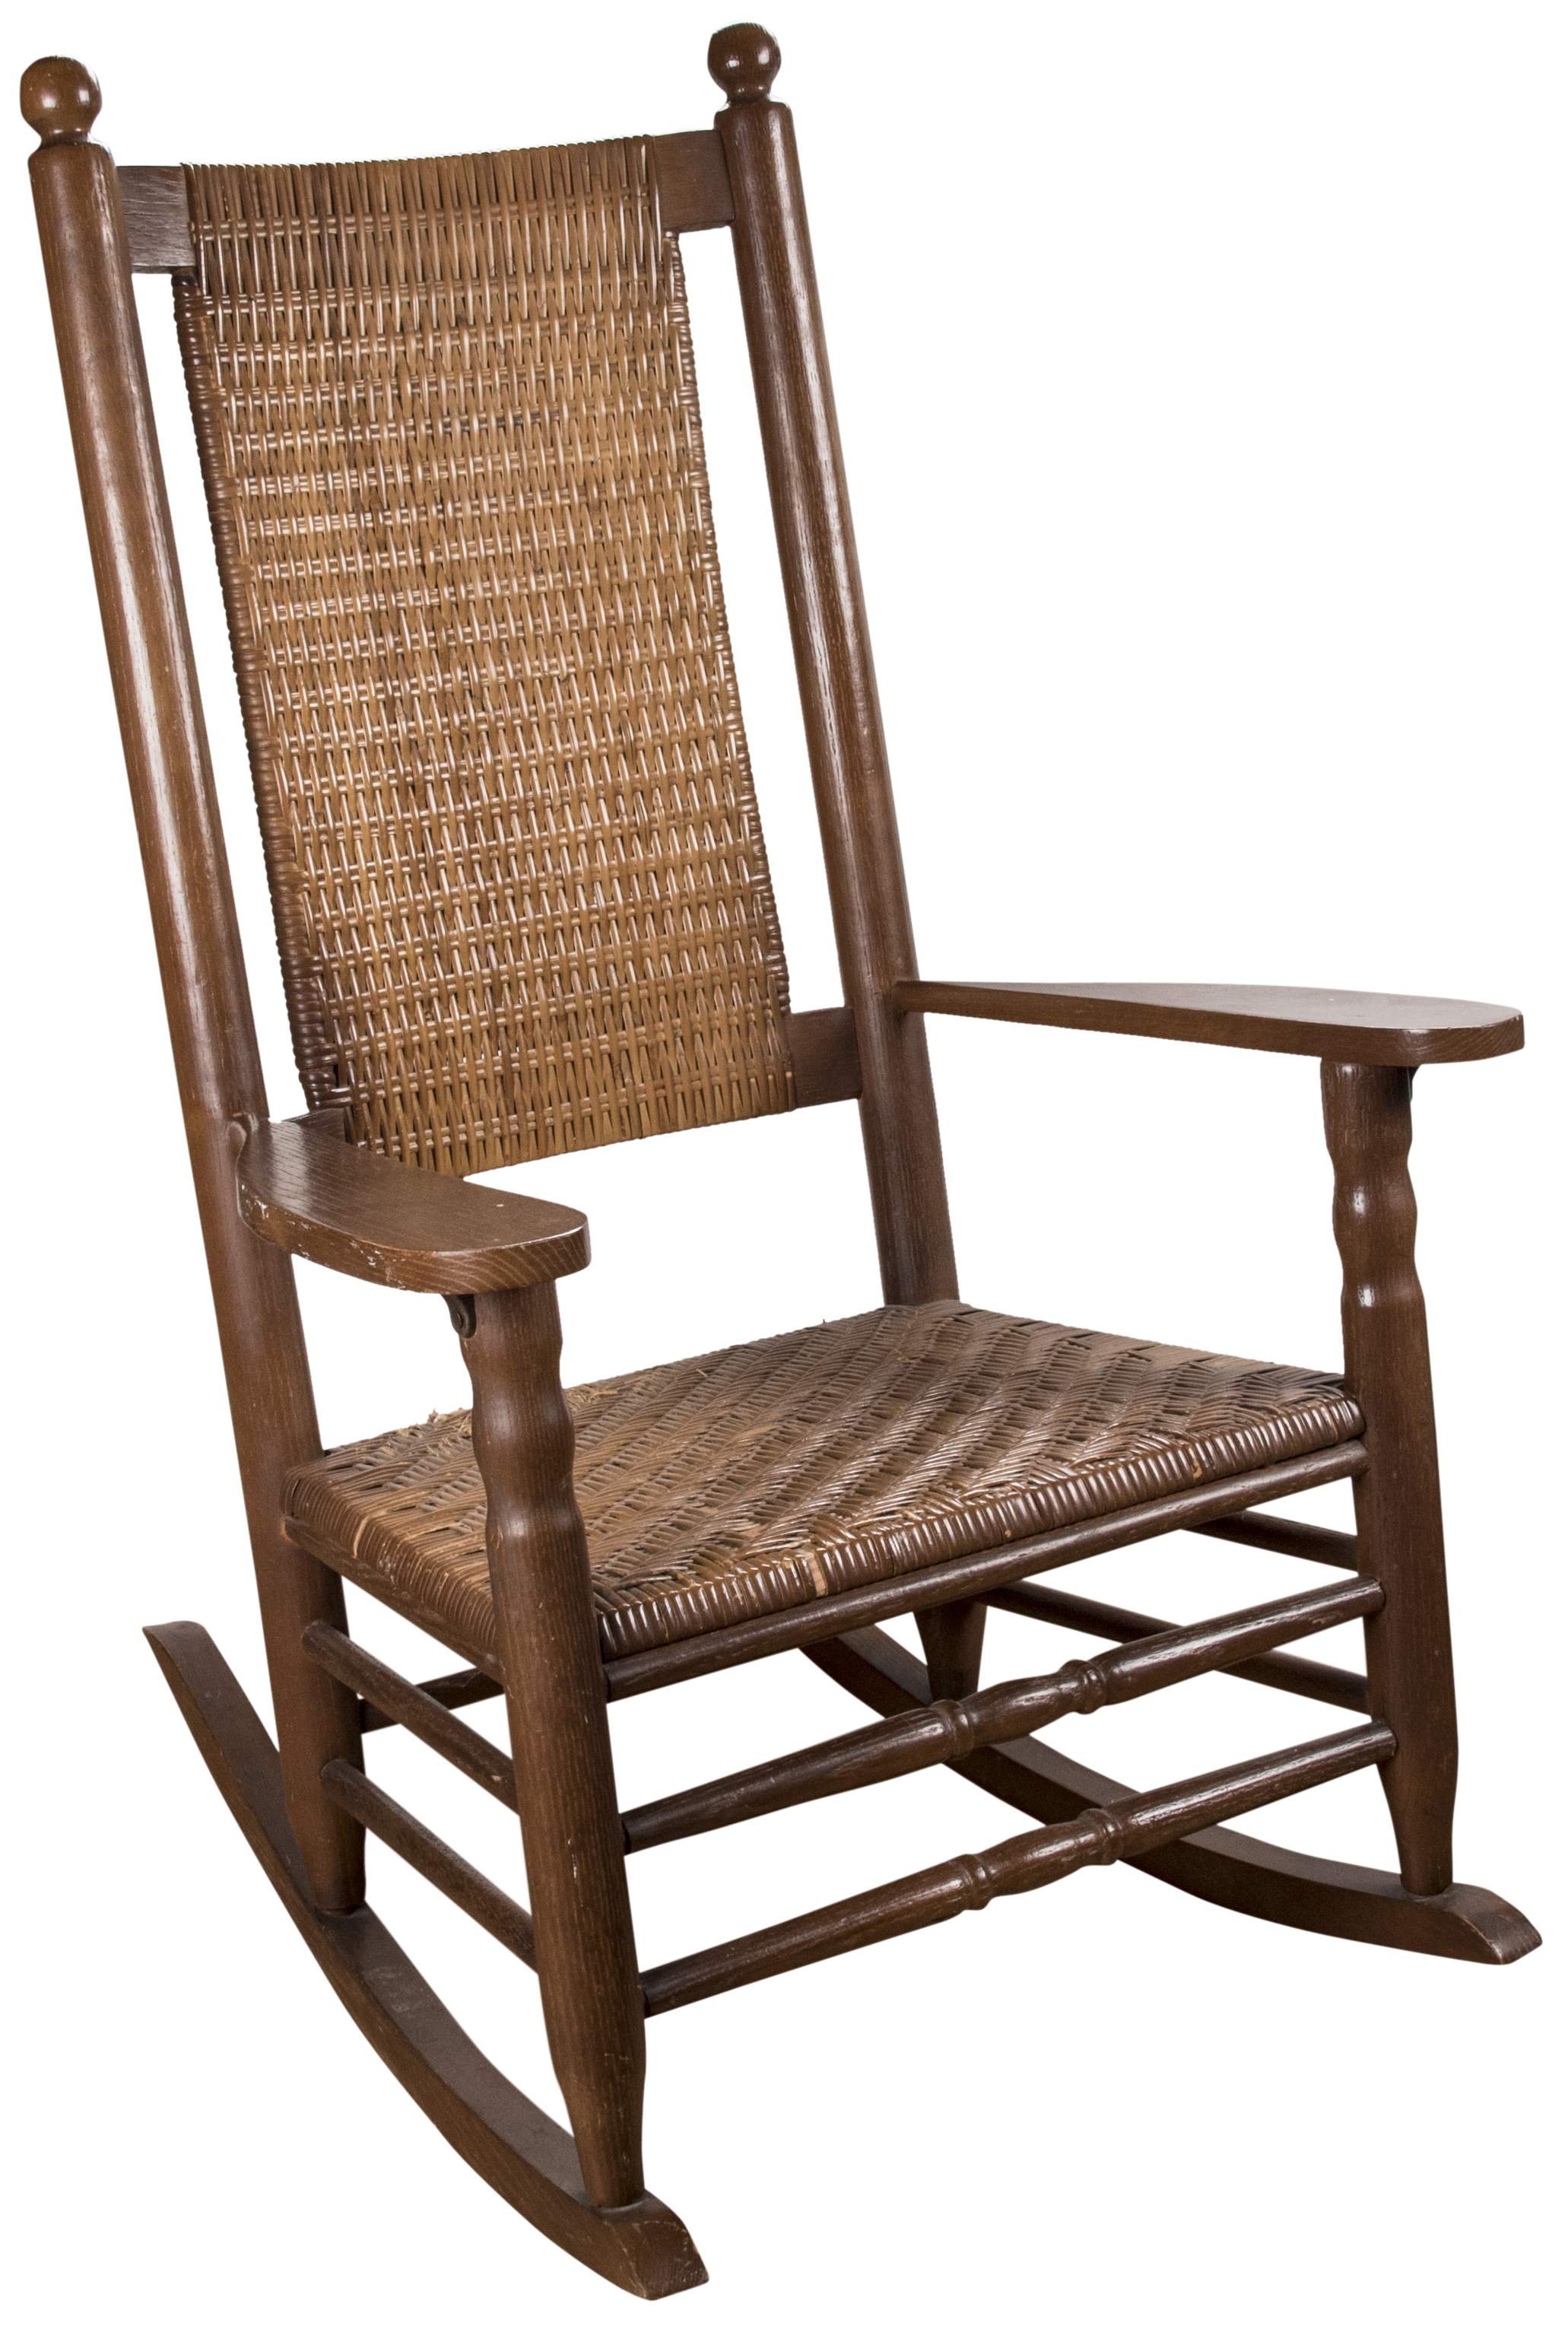 kennedy rocking chair where to buy cheap covers for folding chairs lot detail john f 39s personal from